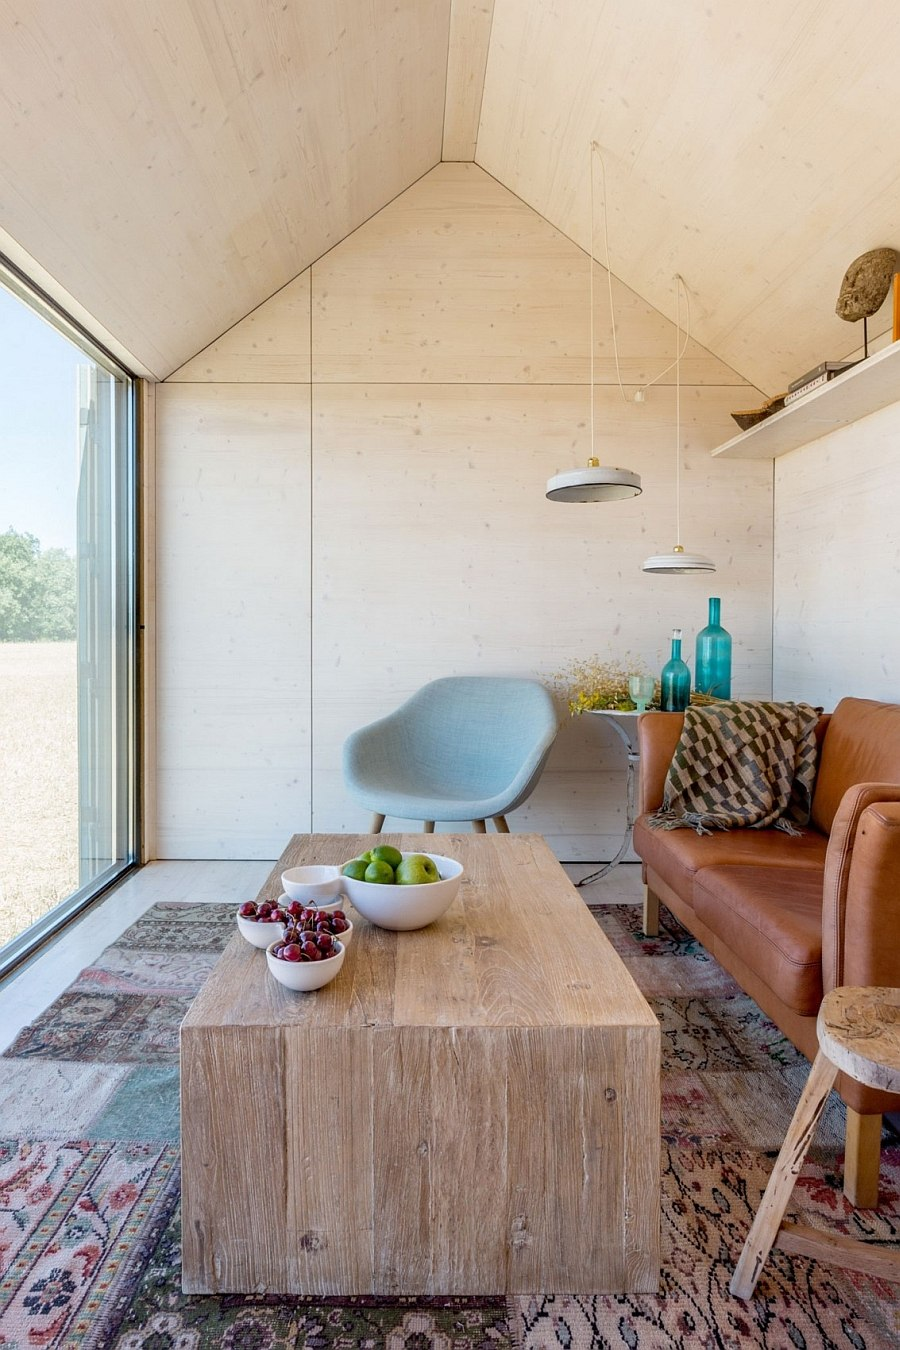 Gabled roof gives the inreior an airy appeal